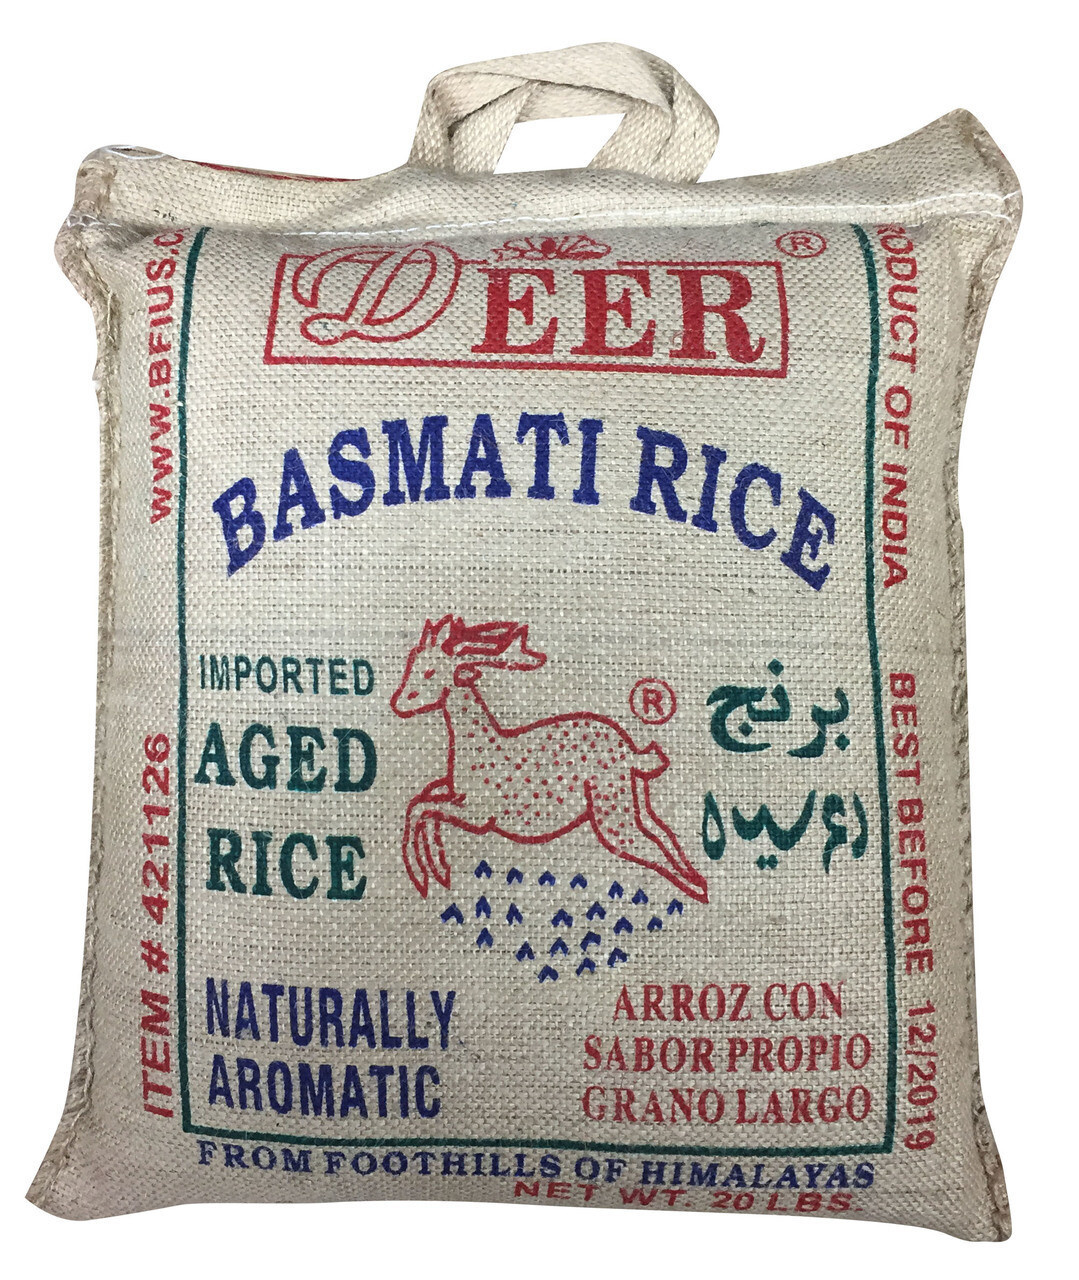 * Deer Basmati Rice 20 Pounds